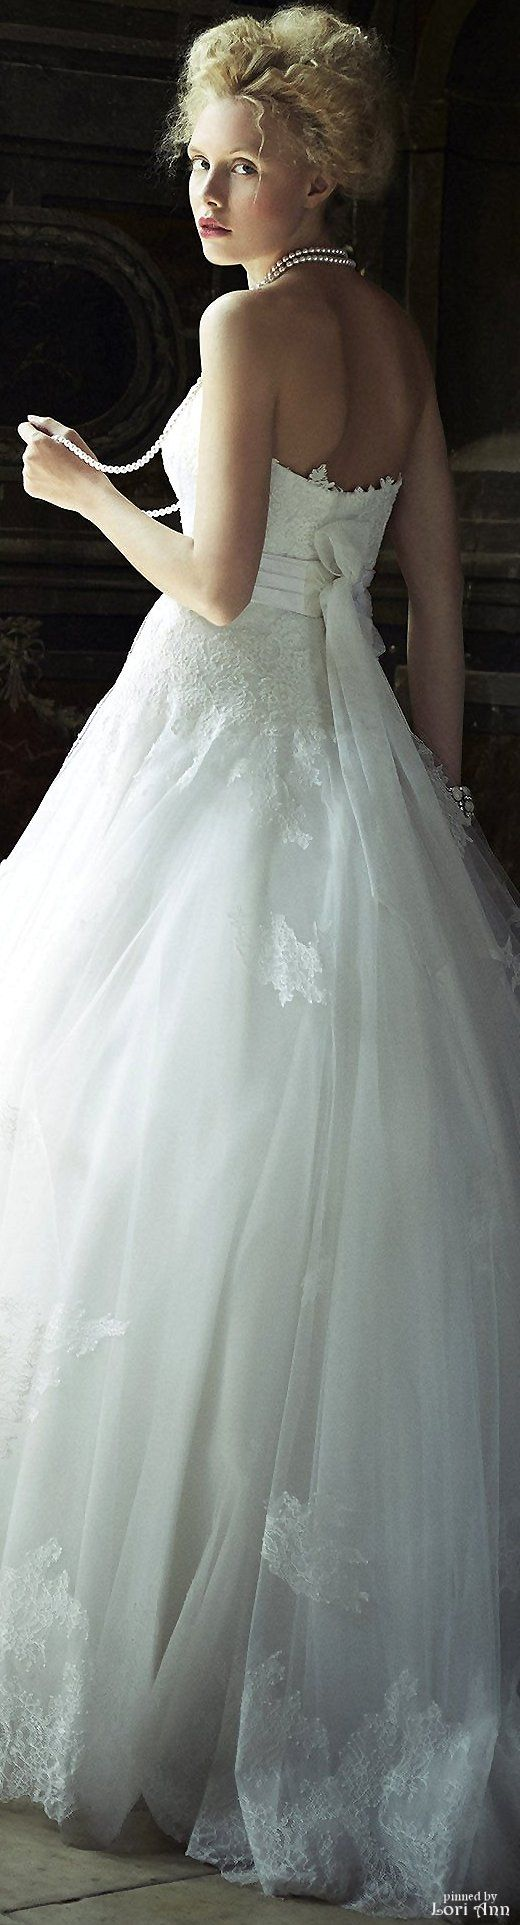 4292 best wedding dresses all things wedding images on pinterest 4292 best wedding dresses all things wedding images on pinterest wedding frocks homecoming dresses straps and short wedding gowns fandeluxe Choice Image